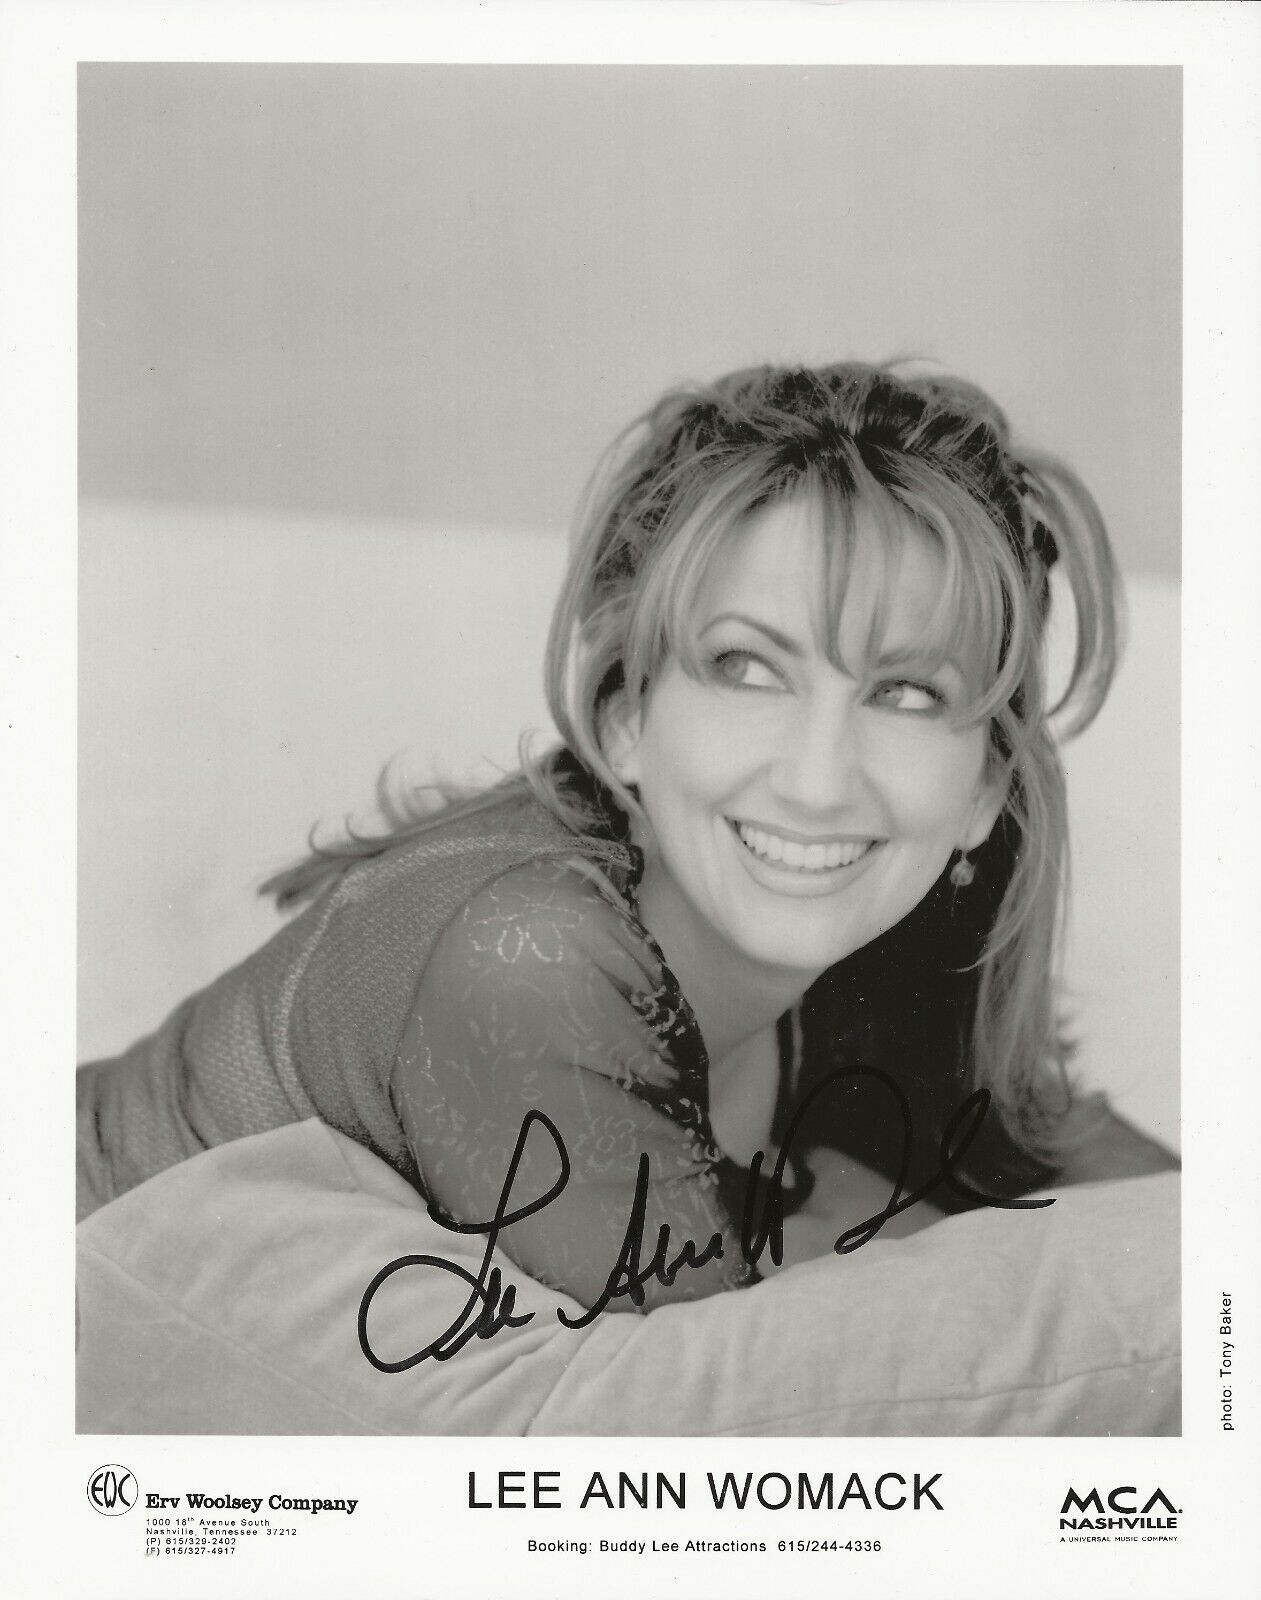 Lee Ann Womack REAL Hand SIGNED Early 8x10 Promotional Photo 1 COA Autographed - $14.99